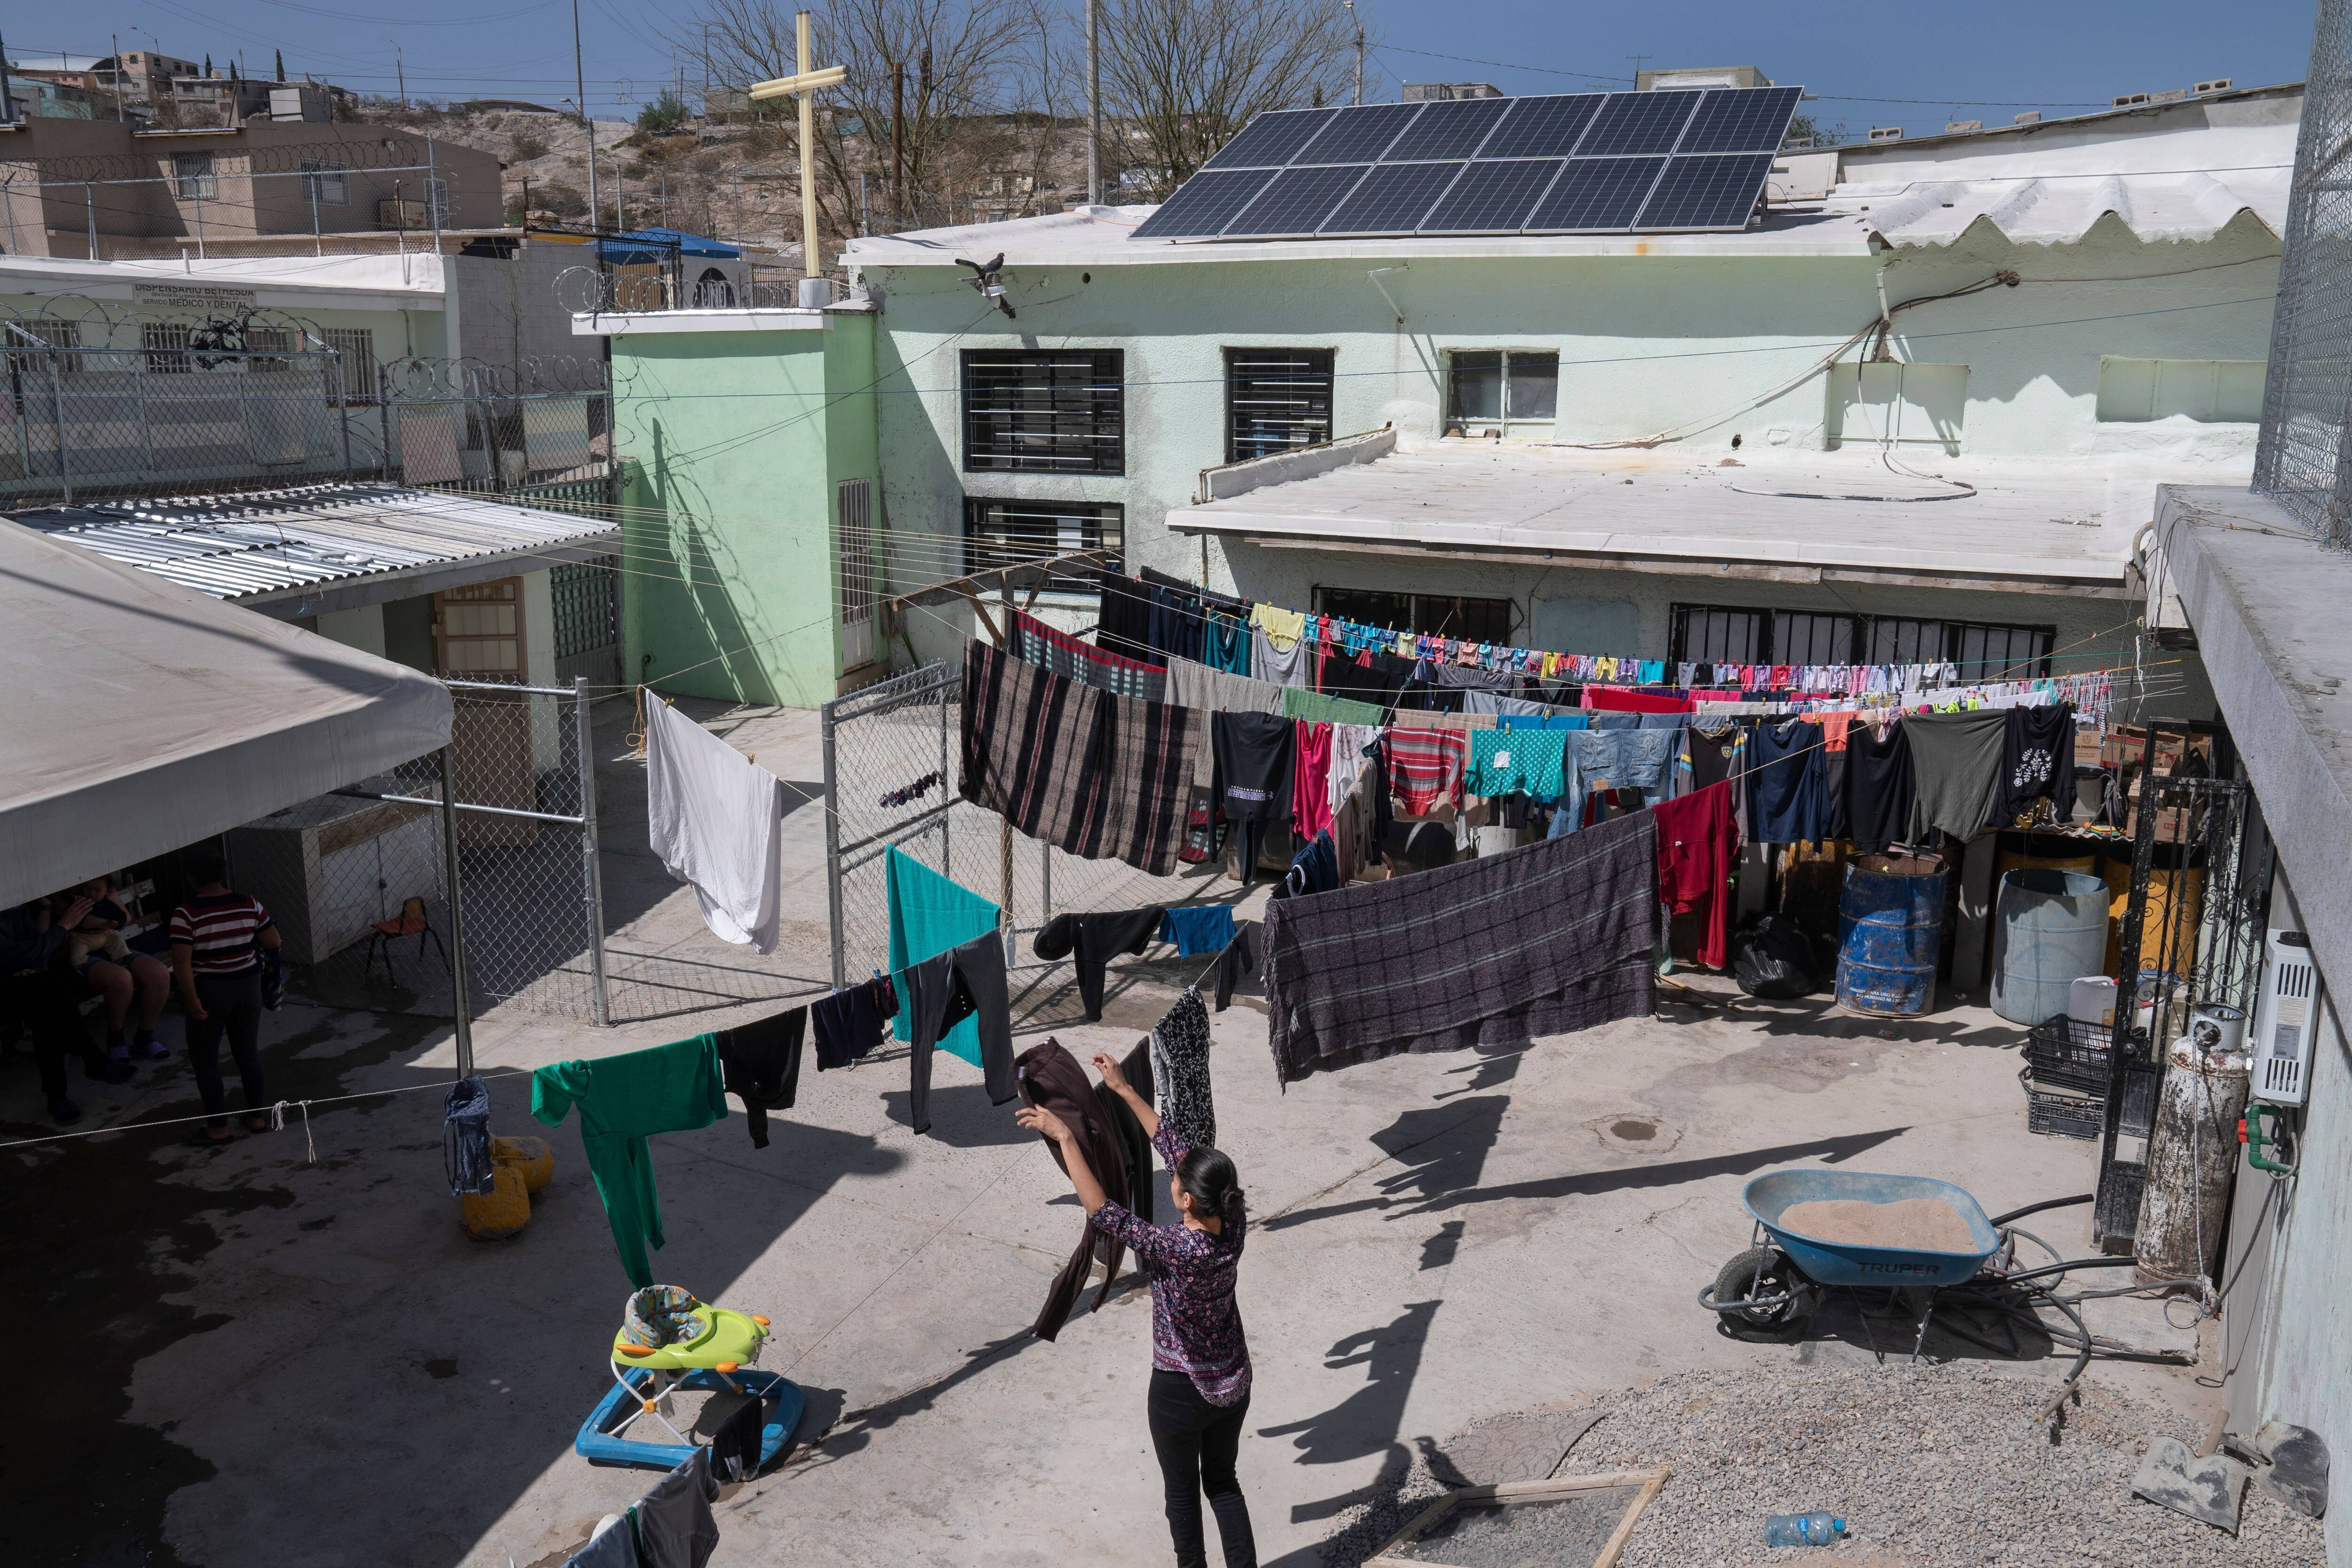 Migrants hang clothes to dry at a shelter in Ciudad Juarez. (Photo by Michael Robinson Chavez/The Washington Post)